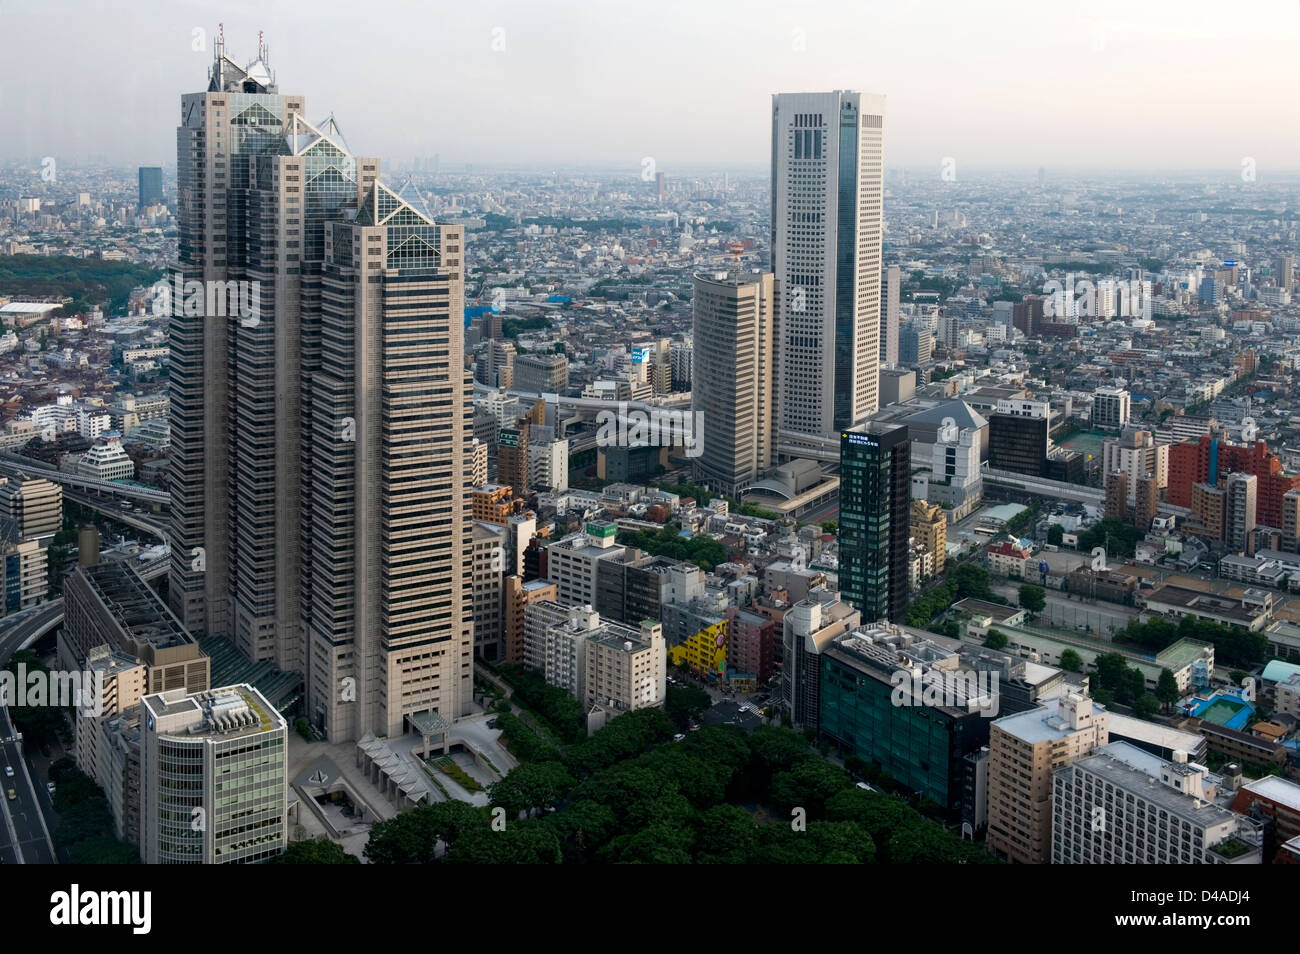 Aerial view of downtown Tokyo city skyline with skyscraper buildings including the Park Hyatt Hotel Tower and urban - Stock Image